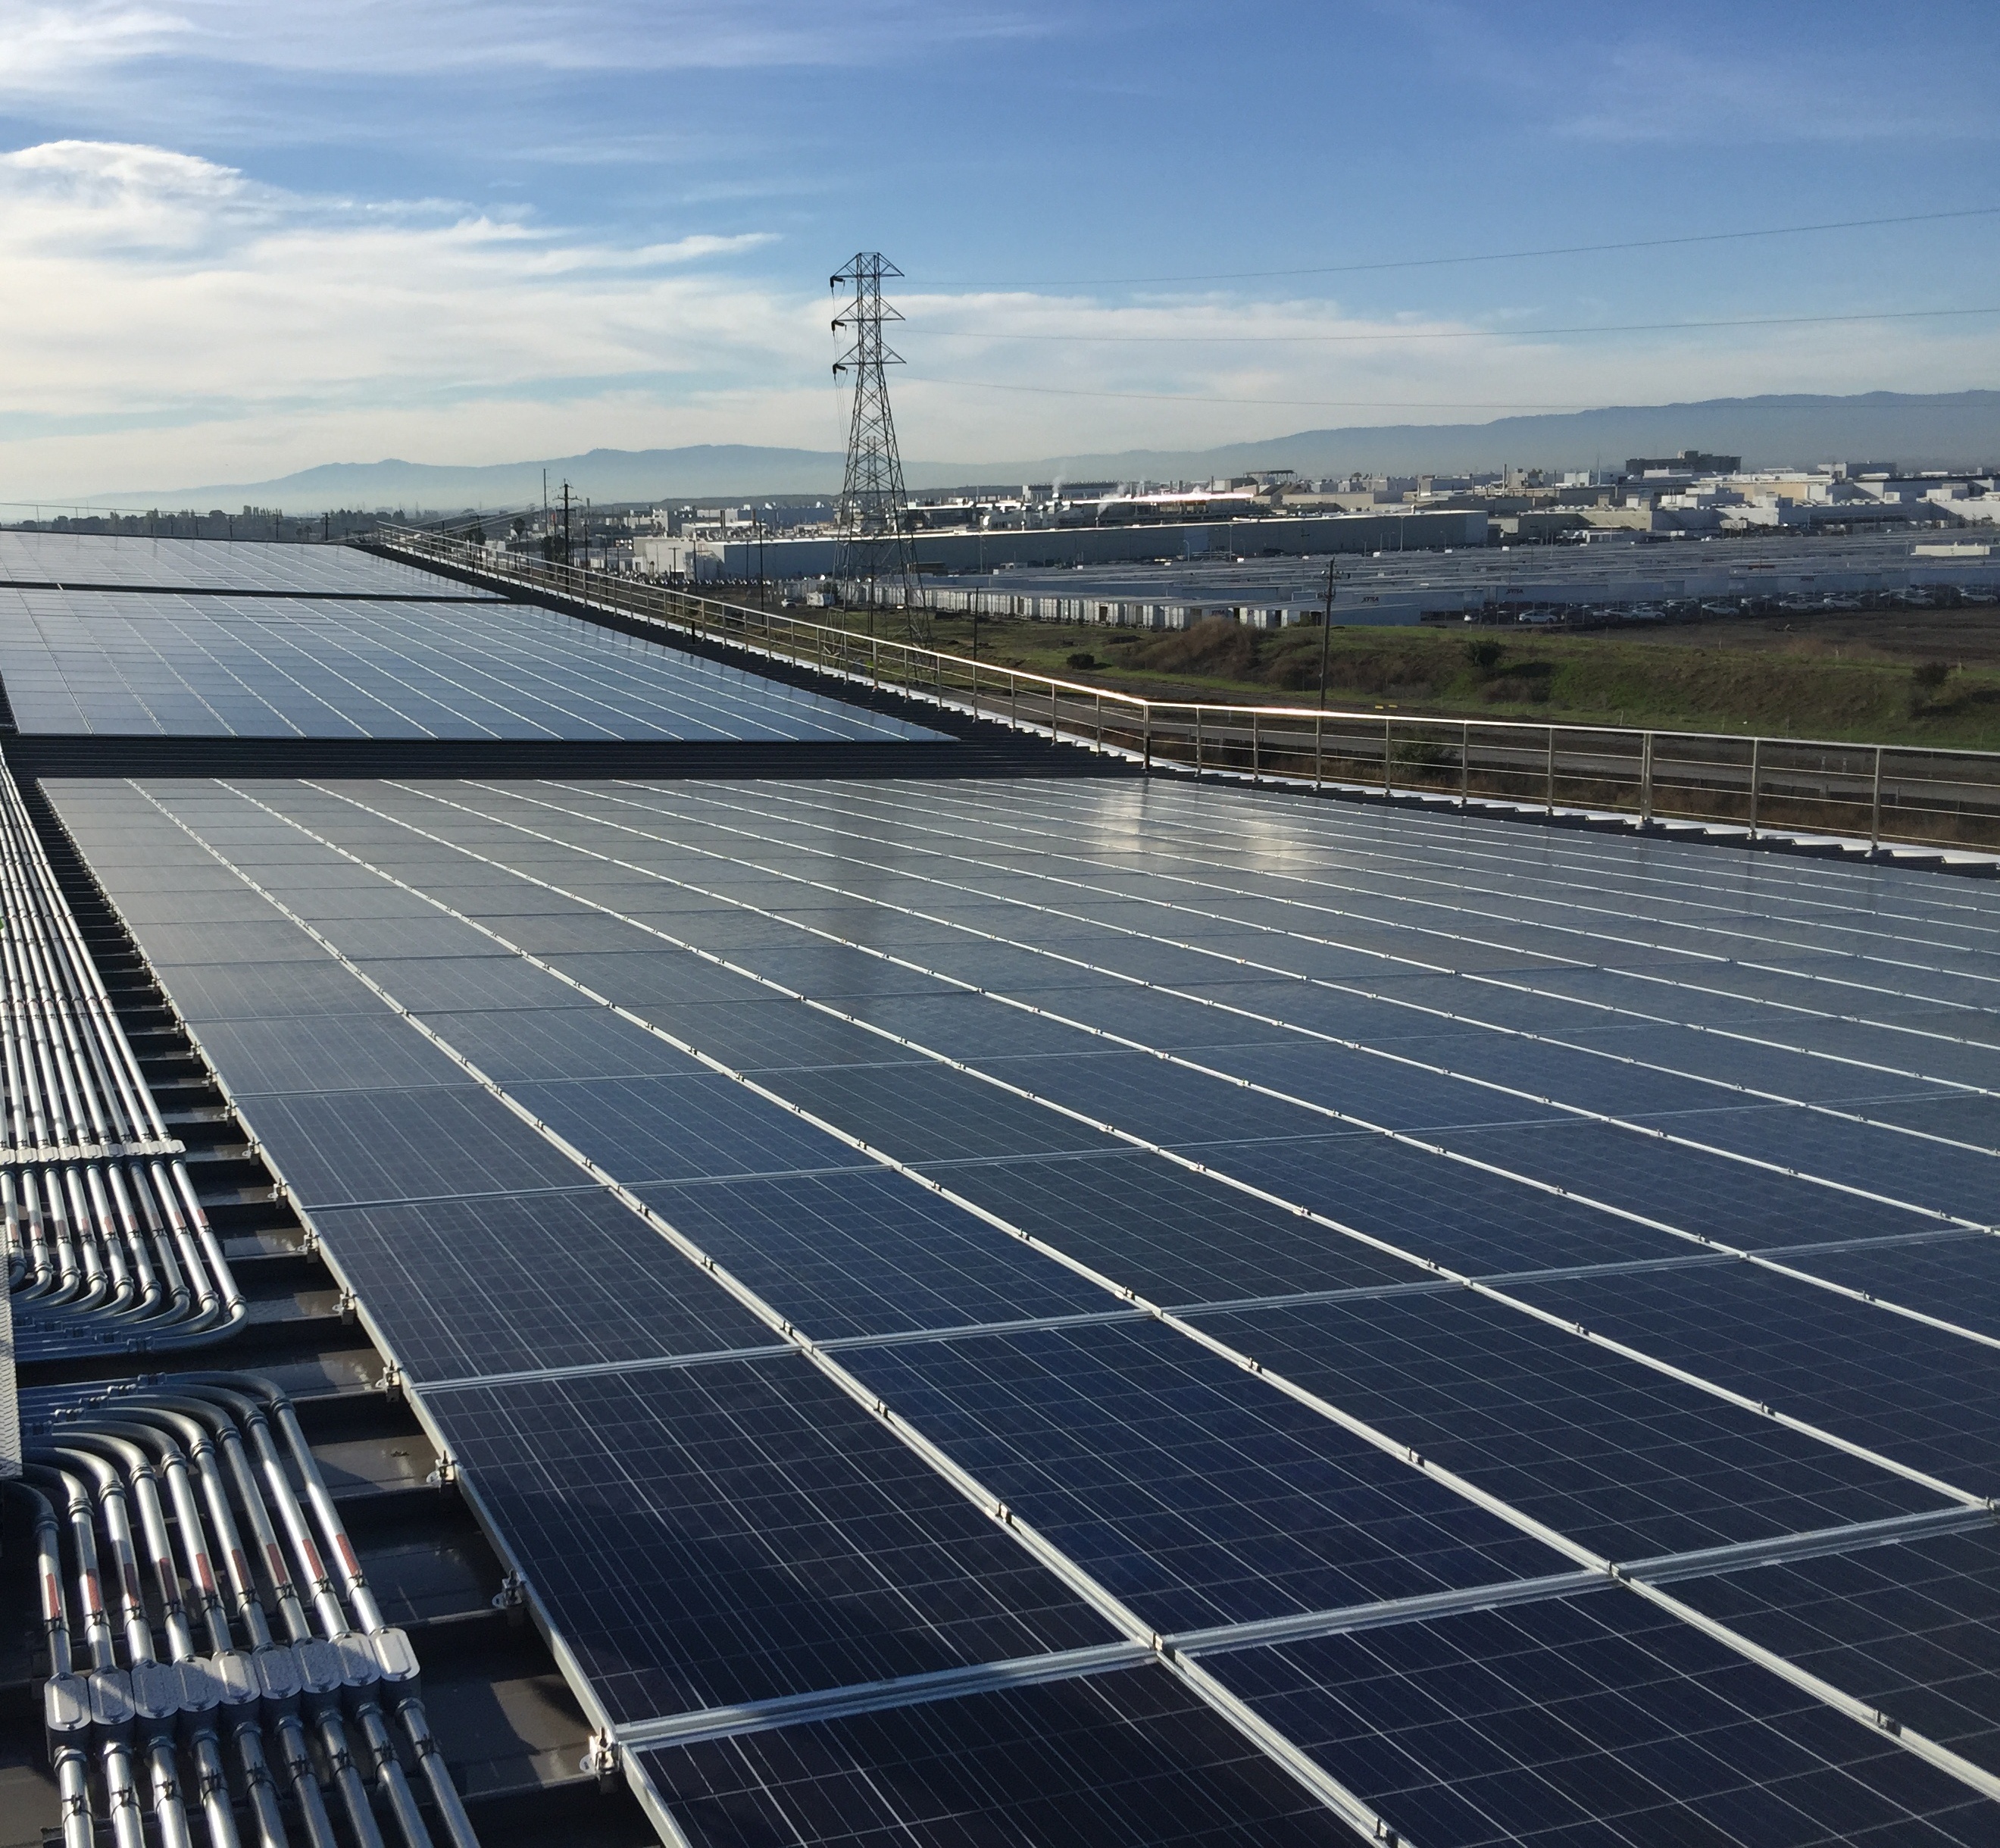 Solar Panels at Warm Springs / South Fremont Station